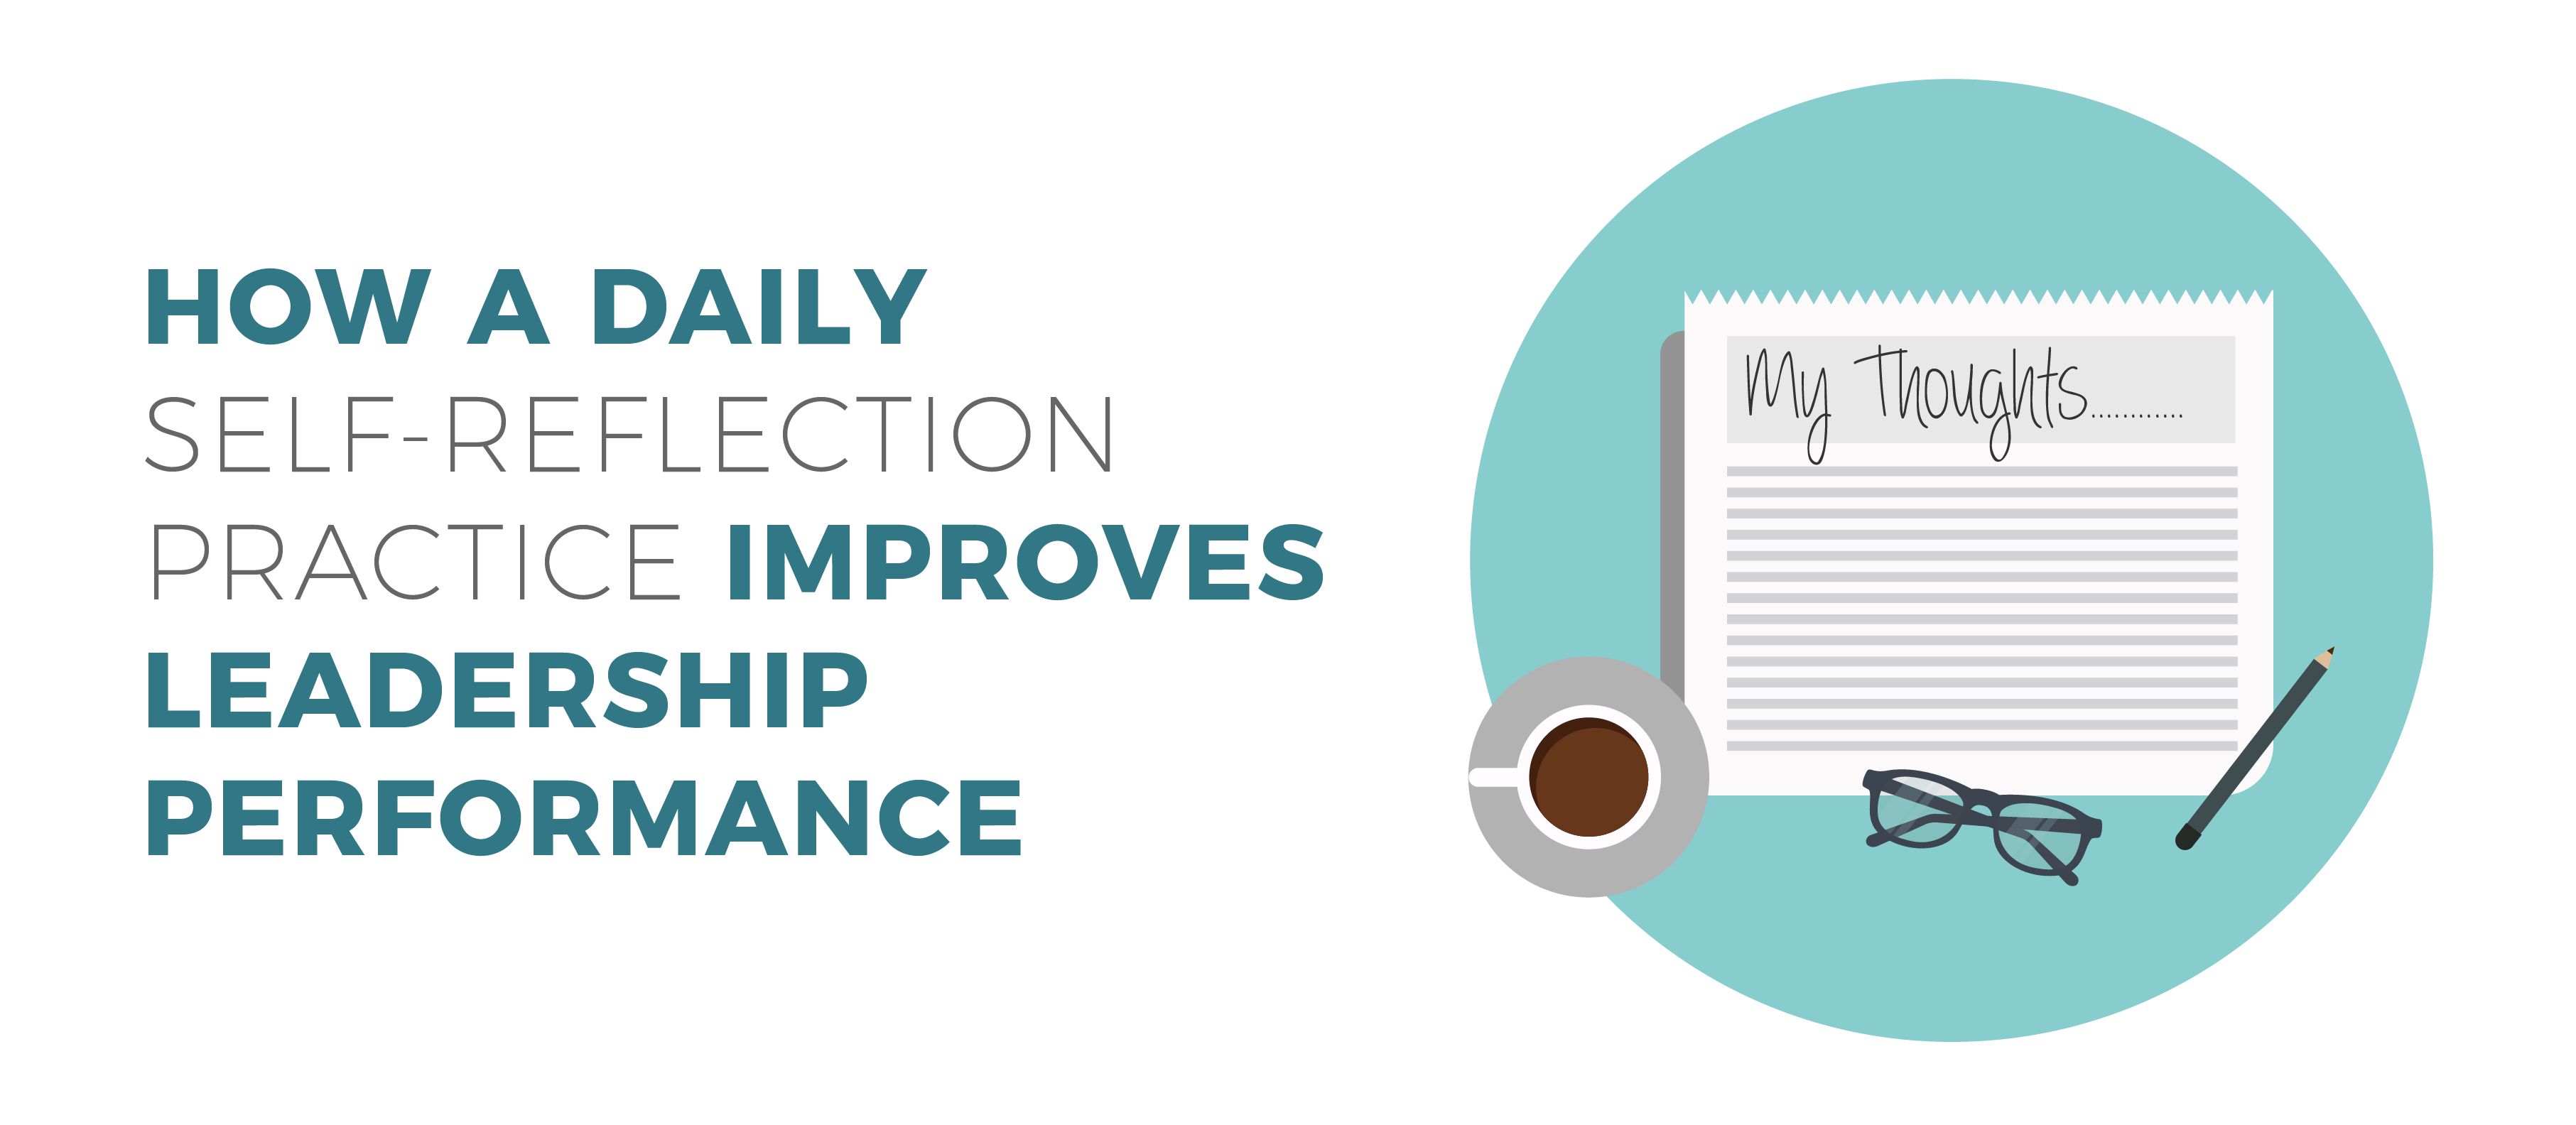 Daily Self-Reflection Practice Improves Leadership Performance